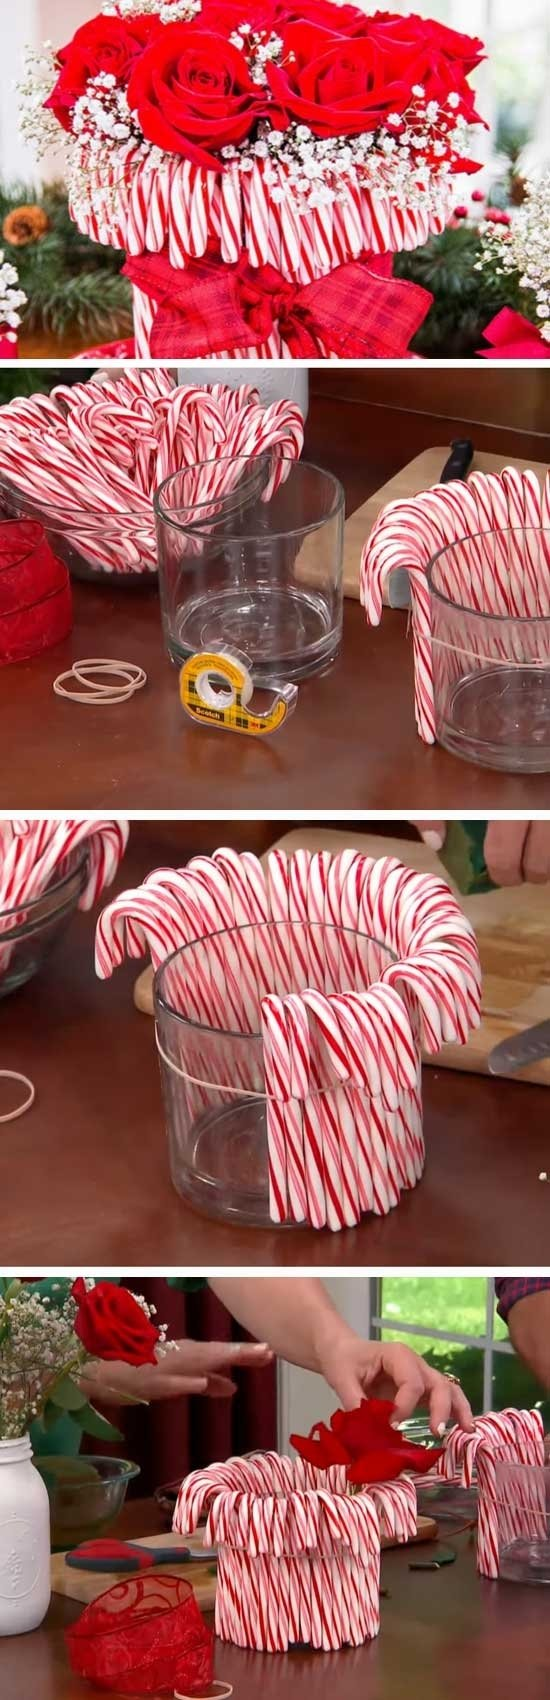 10 Fabulous Great Party Ideas For Adults 25 diy christmas party ideas for adults trollox 2020